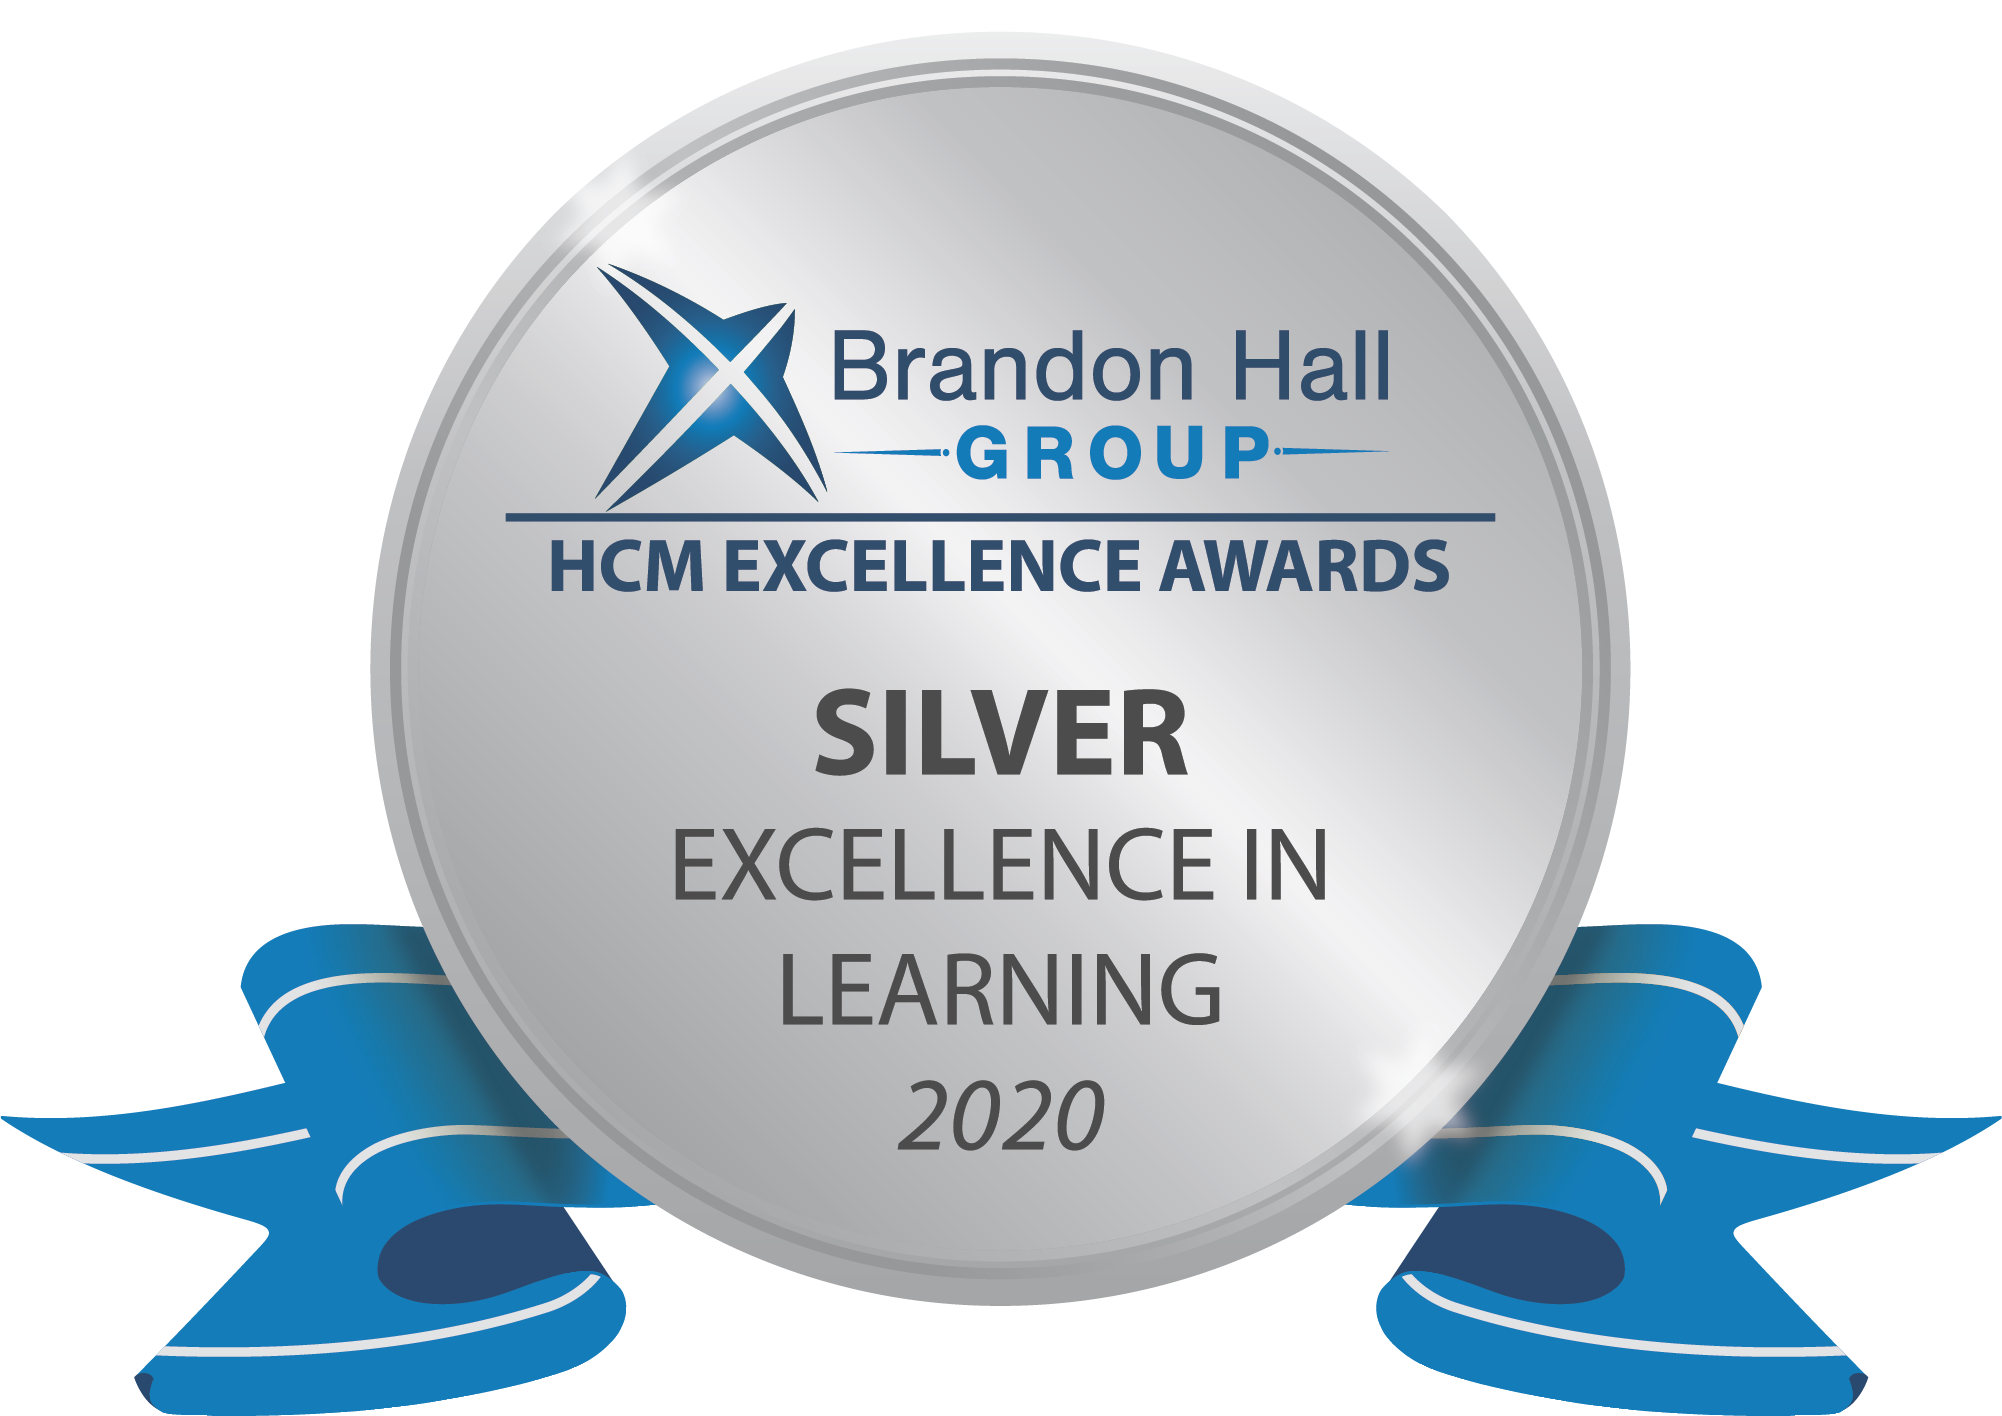 Silver-Learning-Award-2020-01